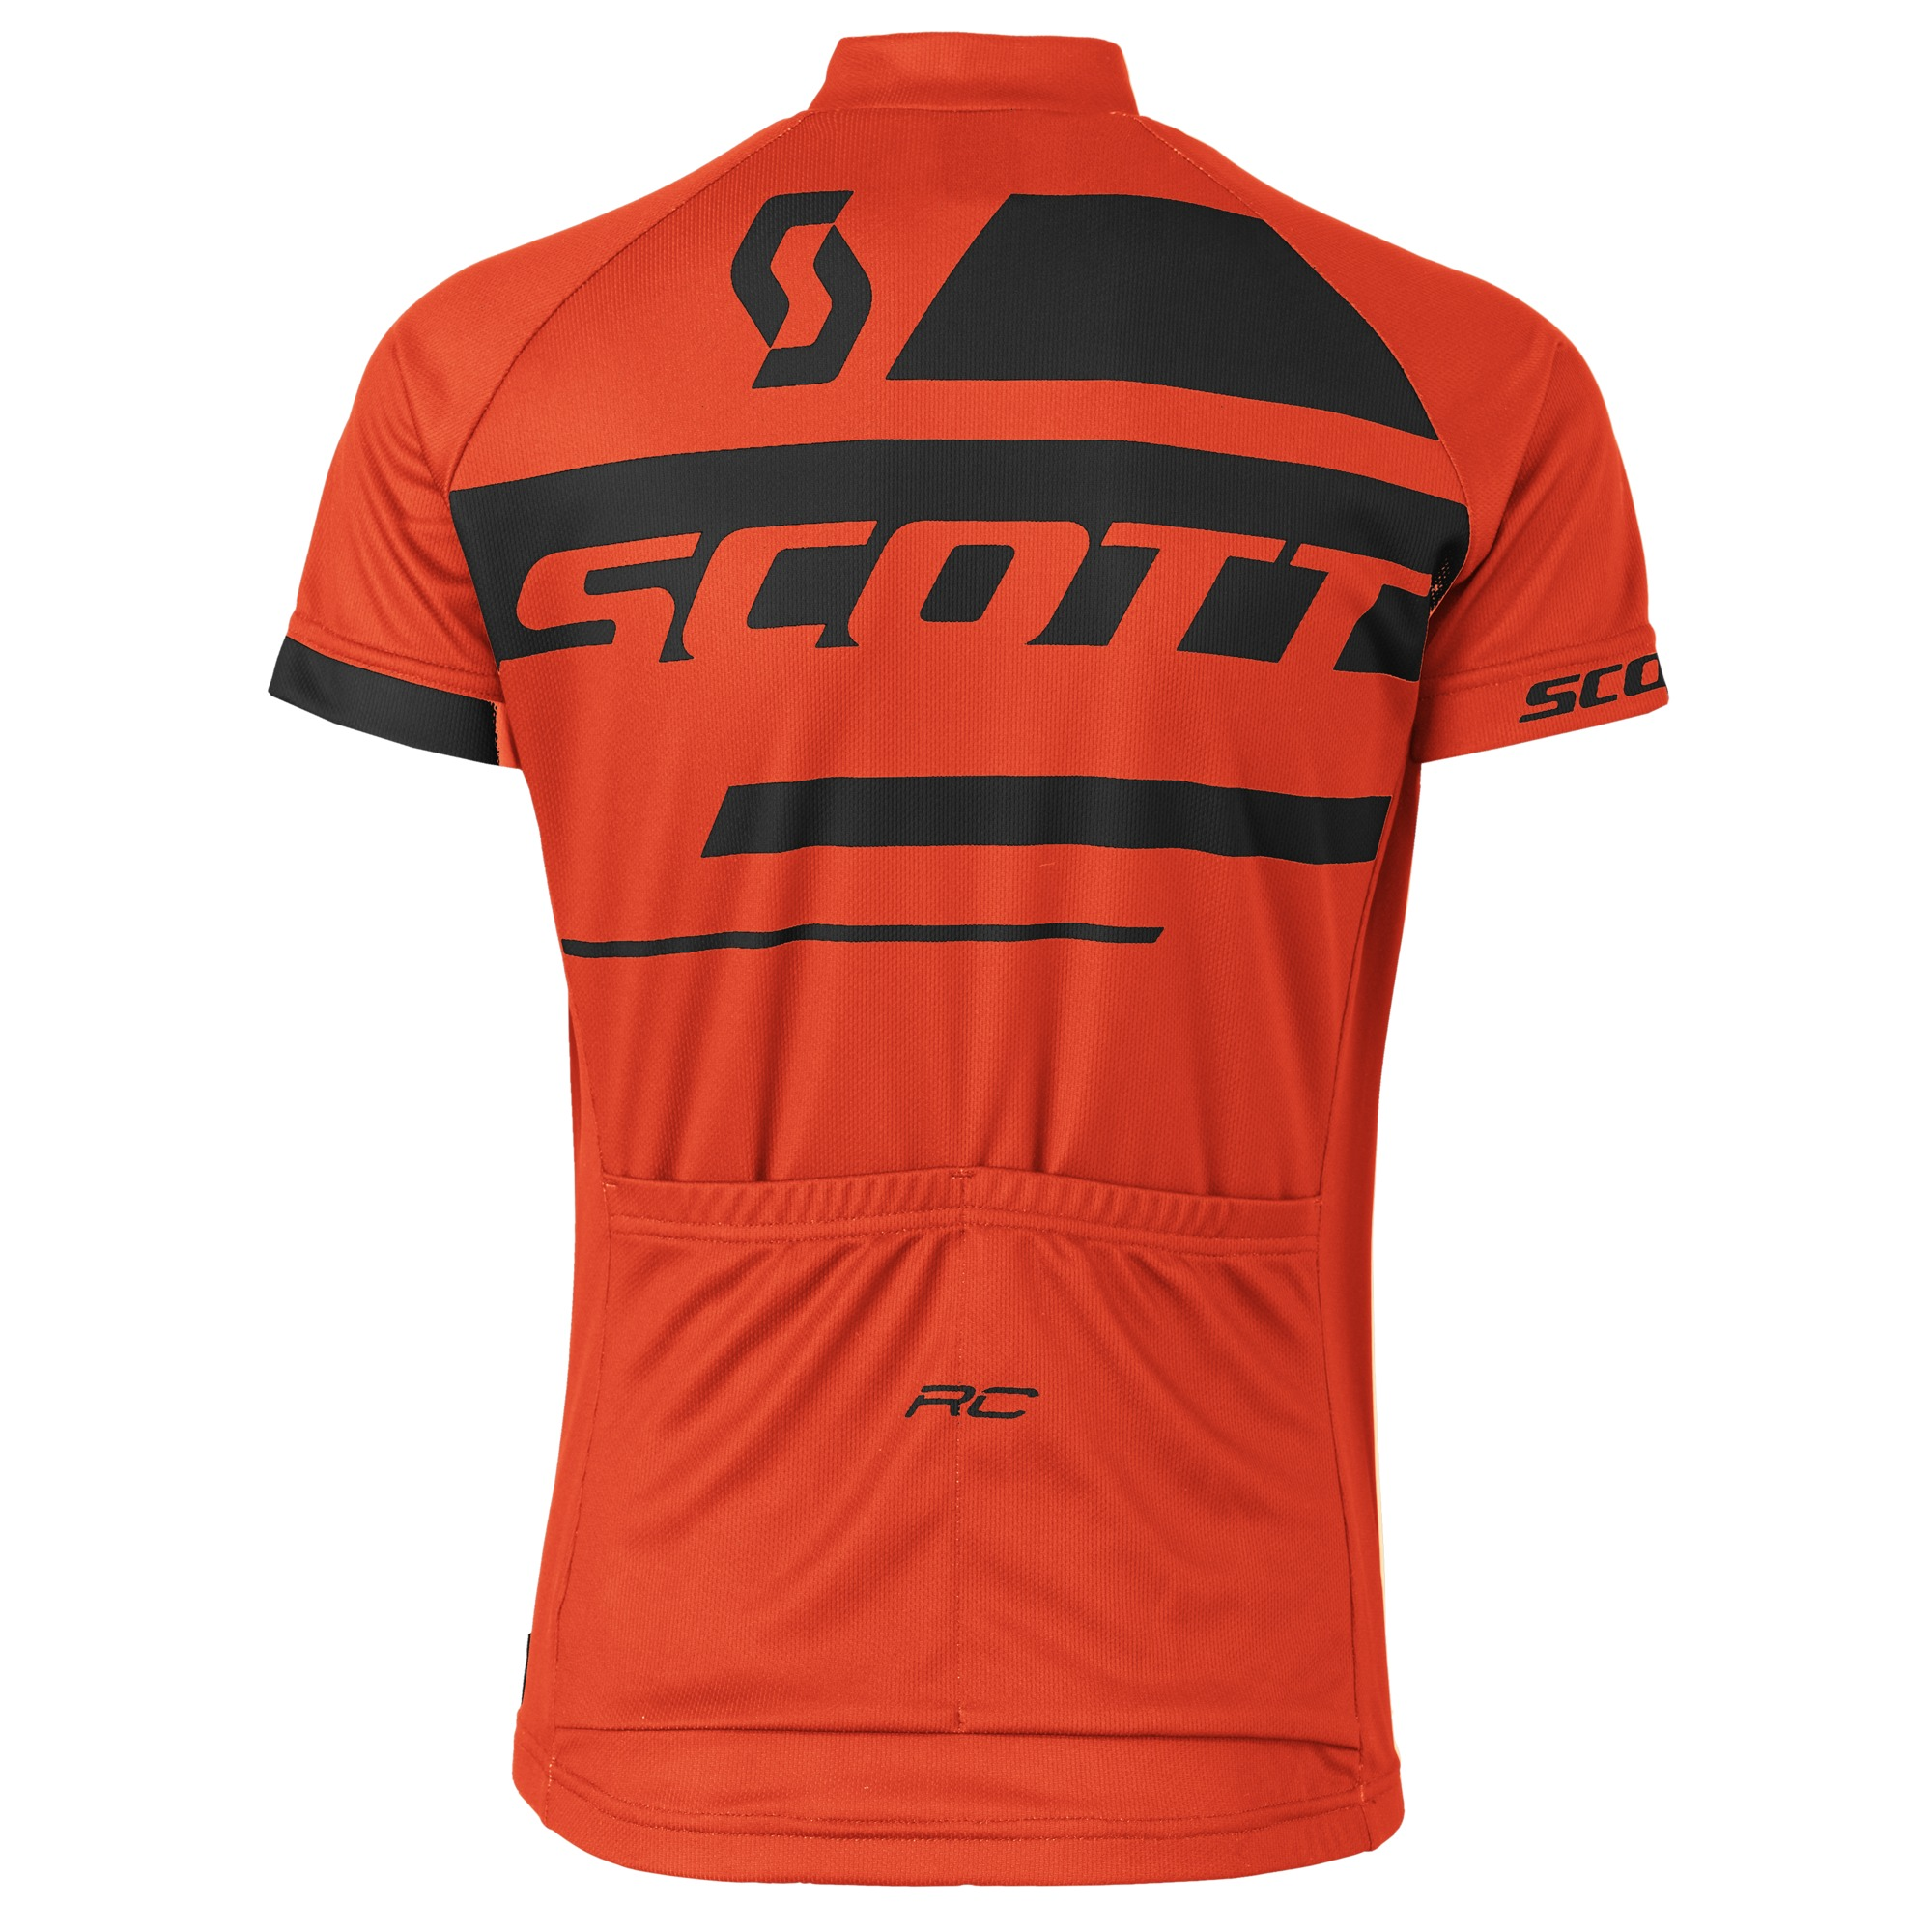 Maglia junior SCOTT RC Team m/c